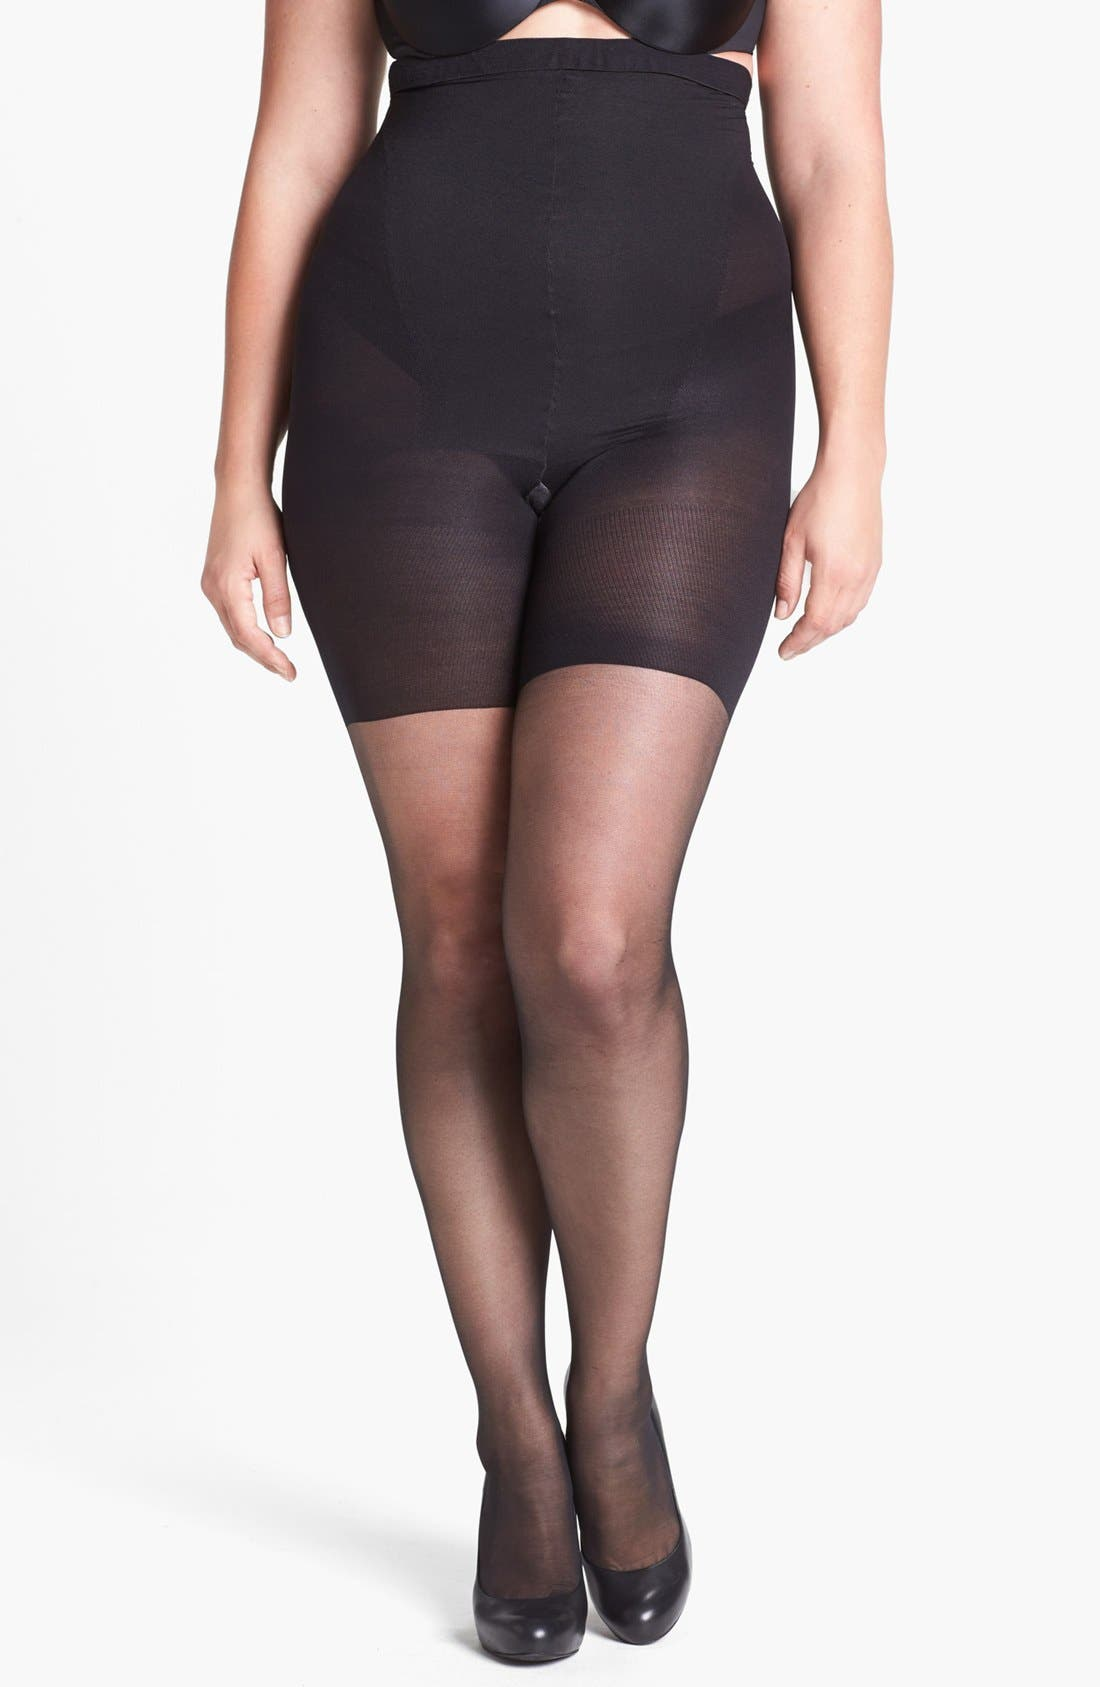 Alternate Image 3  - SPANX® 'Original' High Waisted Shaping Sheers (Regular & Plus Size)